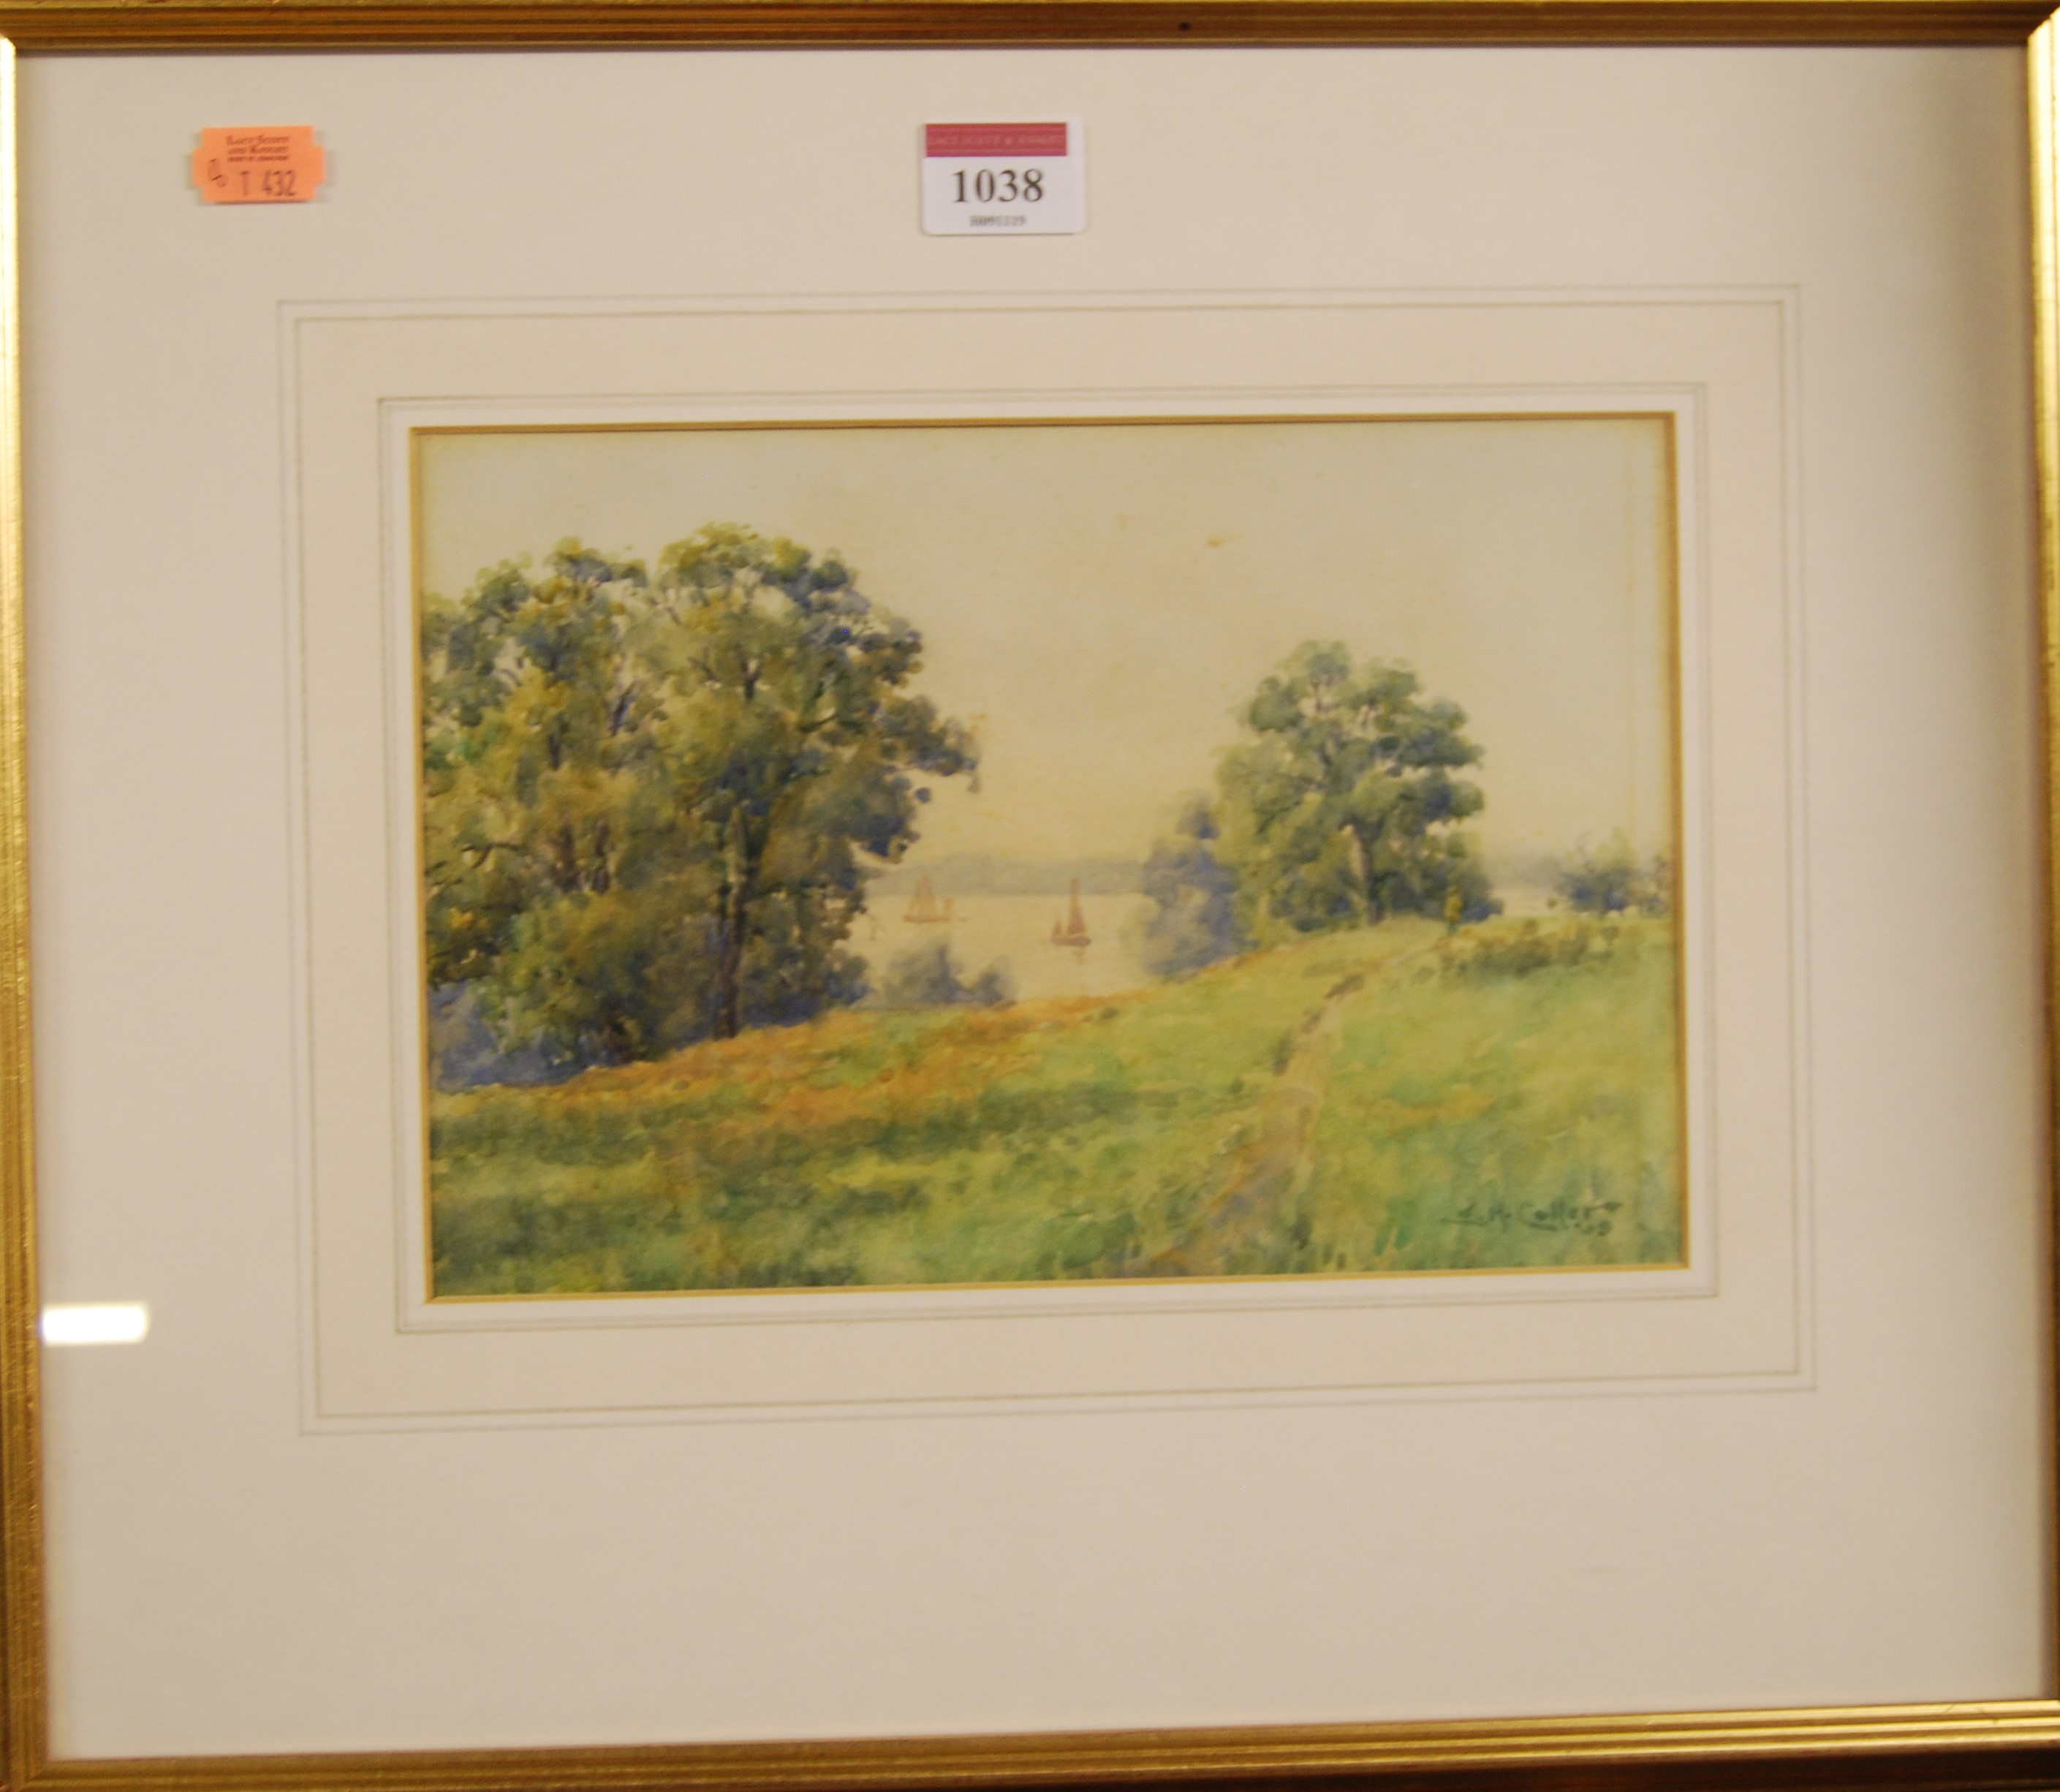 Lot 1038 - E.H. Collier - Boats on the estuary, watercolour, signed lower right, 16.5 x 24cm